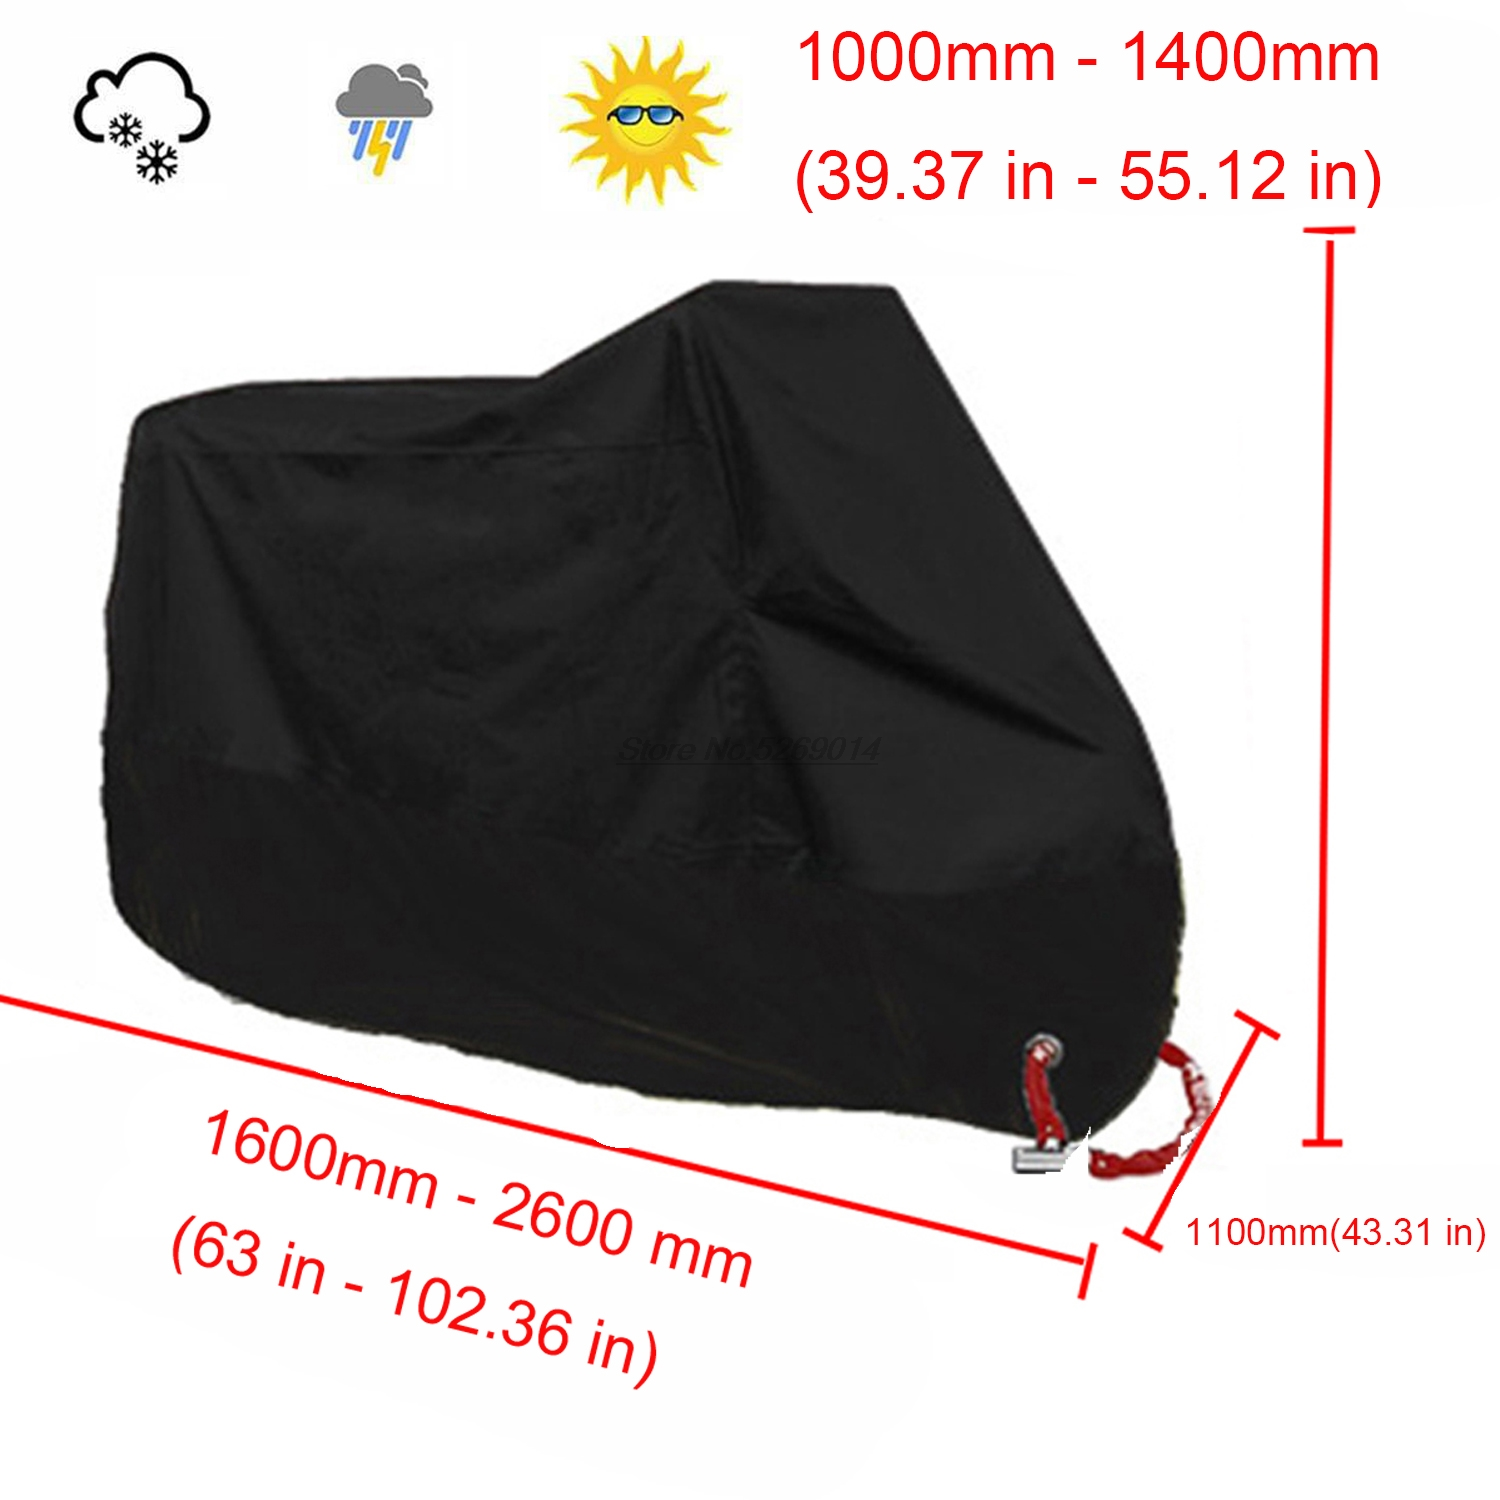 Motorcycle covers UV anti for gsx650f fz09 bmw r1200rs icon motorcycle benelli 125 ducati 748 <font><b>cbr250rr</b></font> gsx 650f dt125r gsxs KTM image